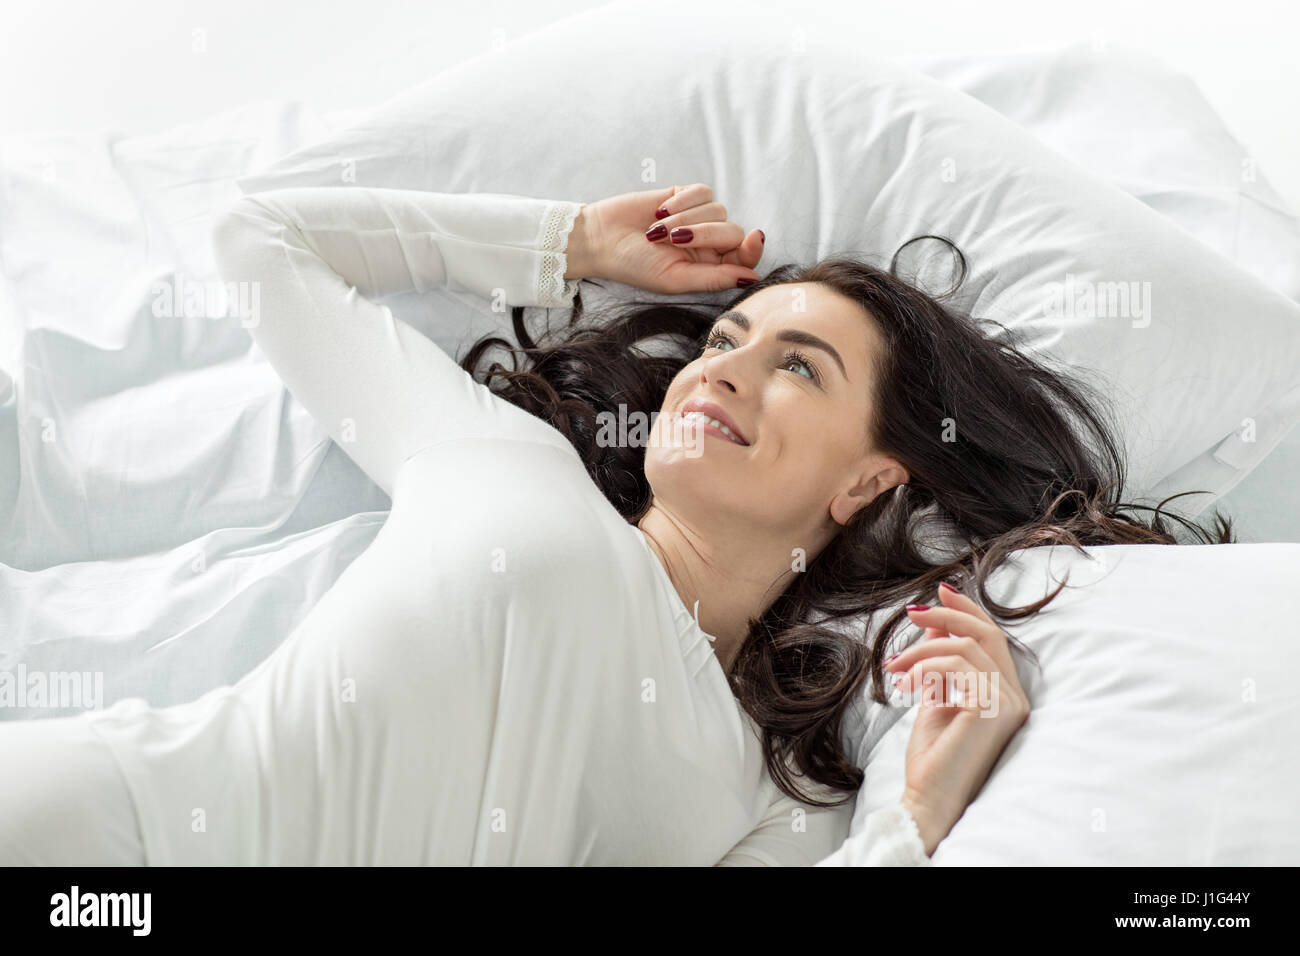 attractive woman in white sleepwear awakening in bed at home - Stock Image